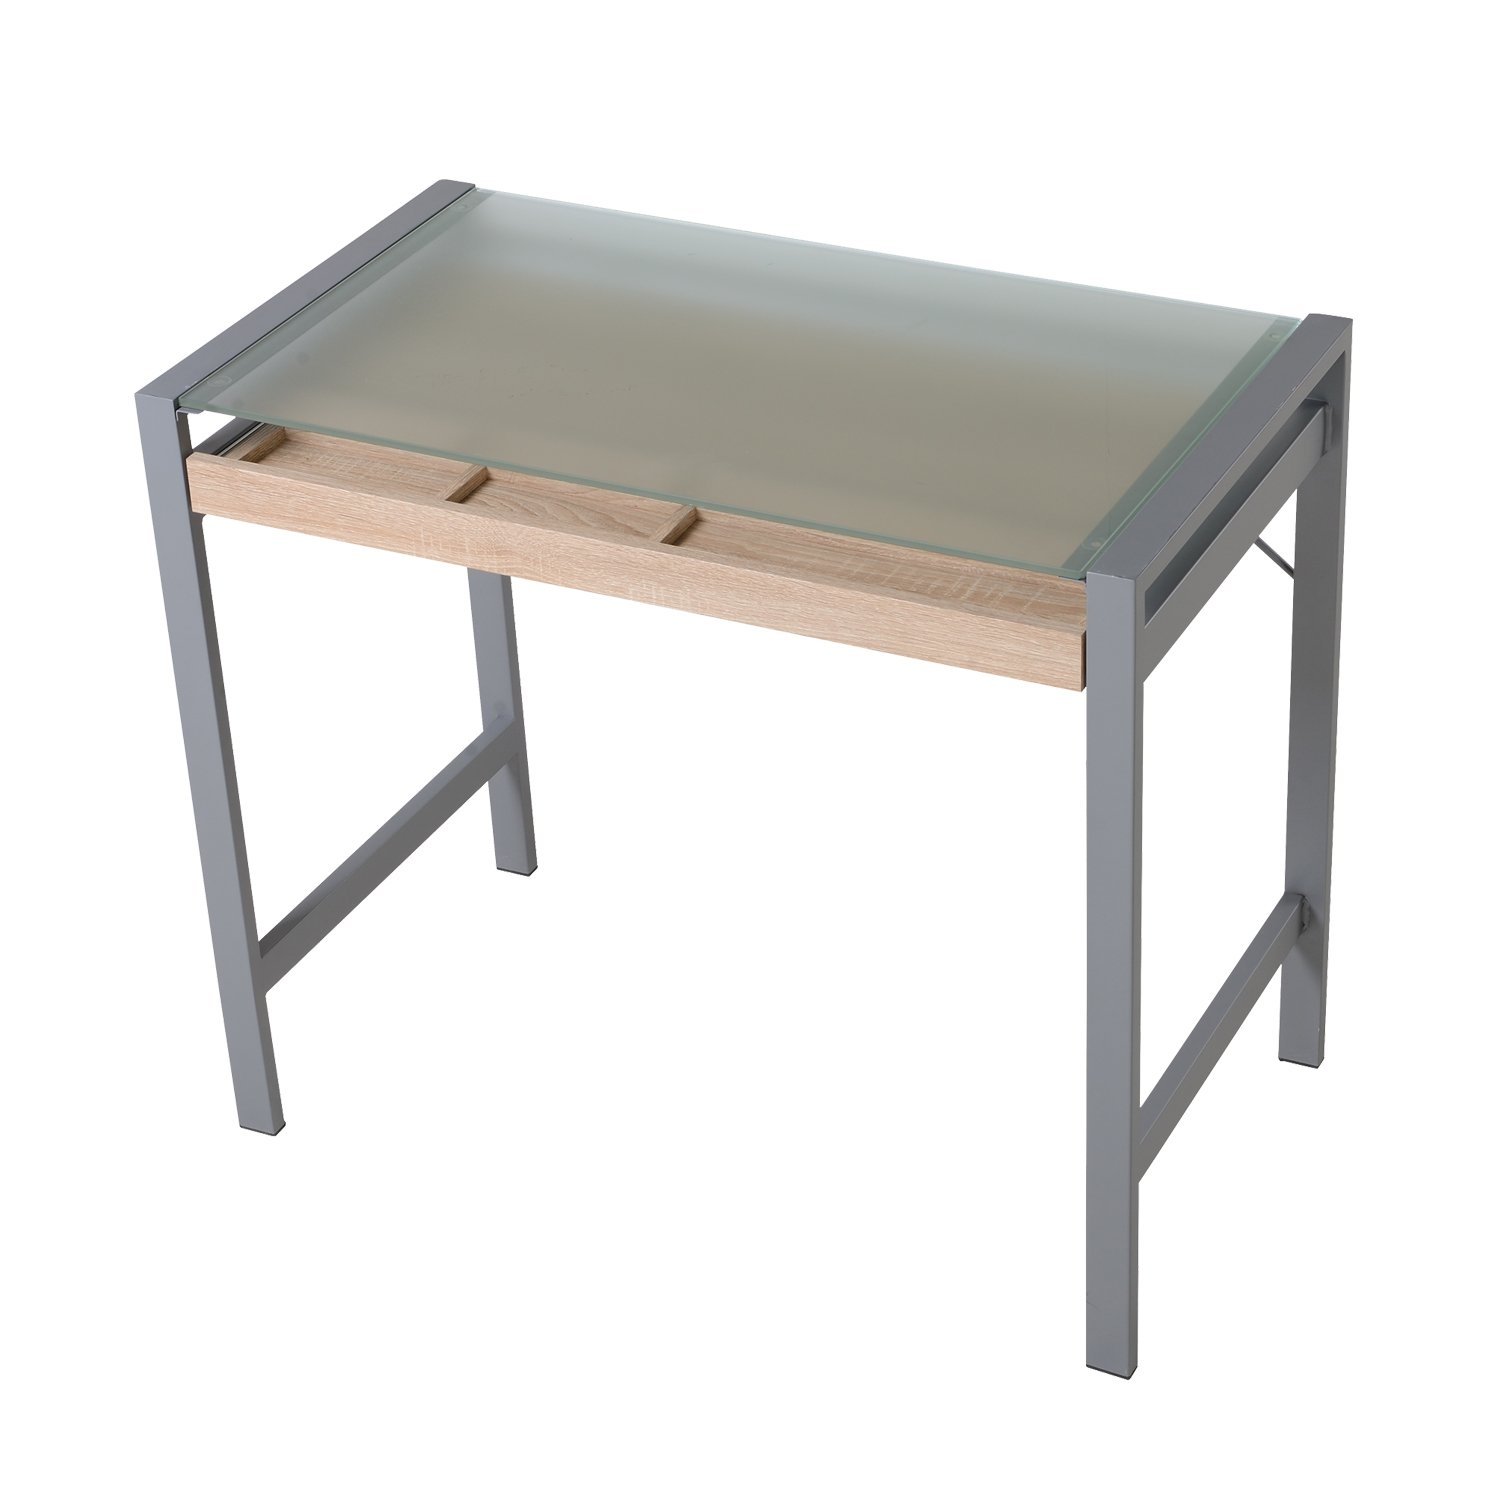 HomCom Modern Wood Steel Frosted Glass Computer Desk Writing Table w/Drawer